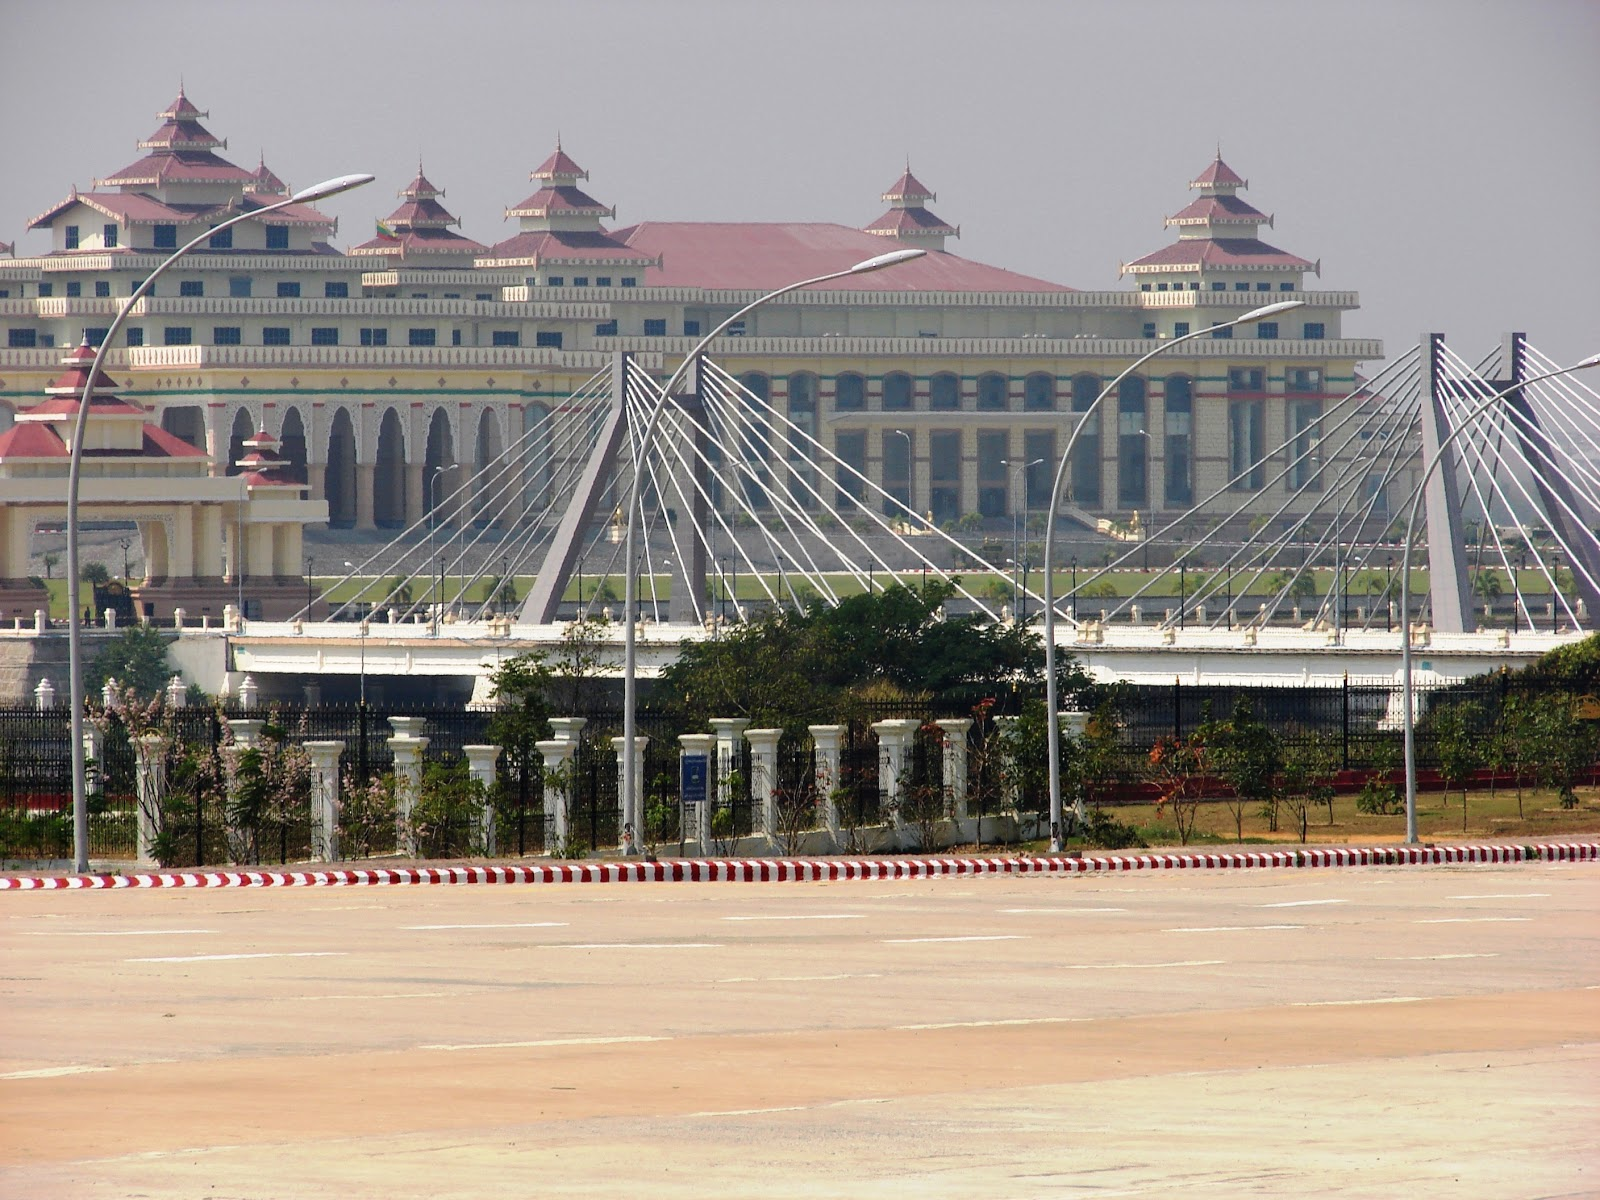 Nay Pyi Taw Myanmar  city images : ... Scott's Travel Columns: Visiting Myanmar's capital Nay Pyi Taw